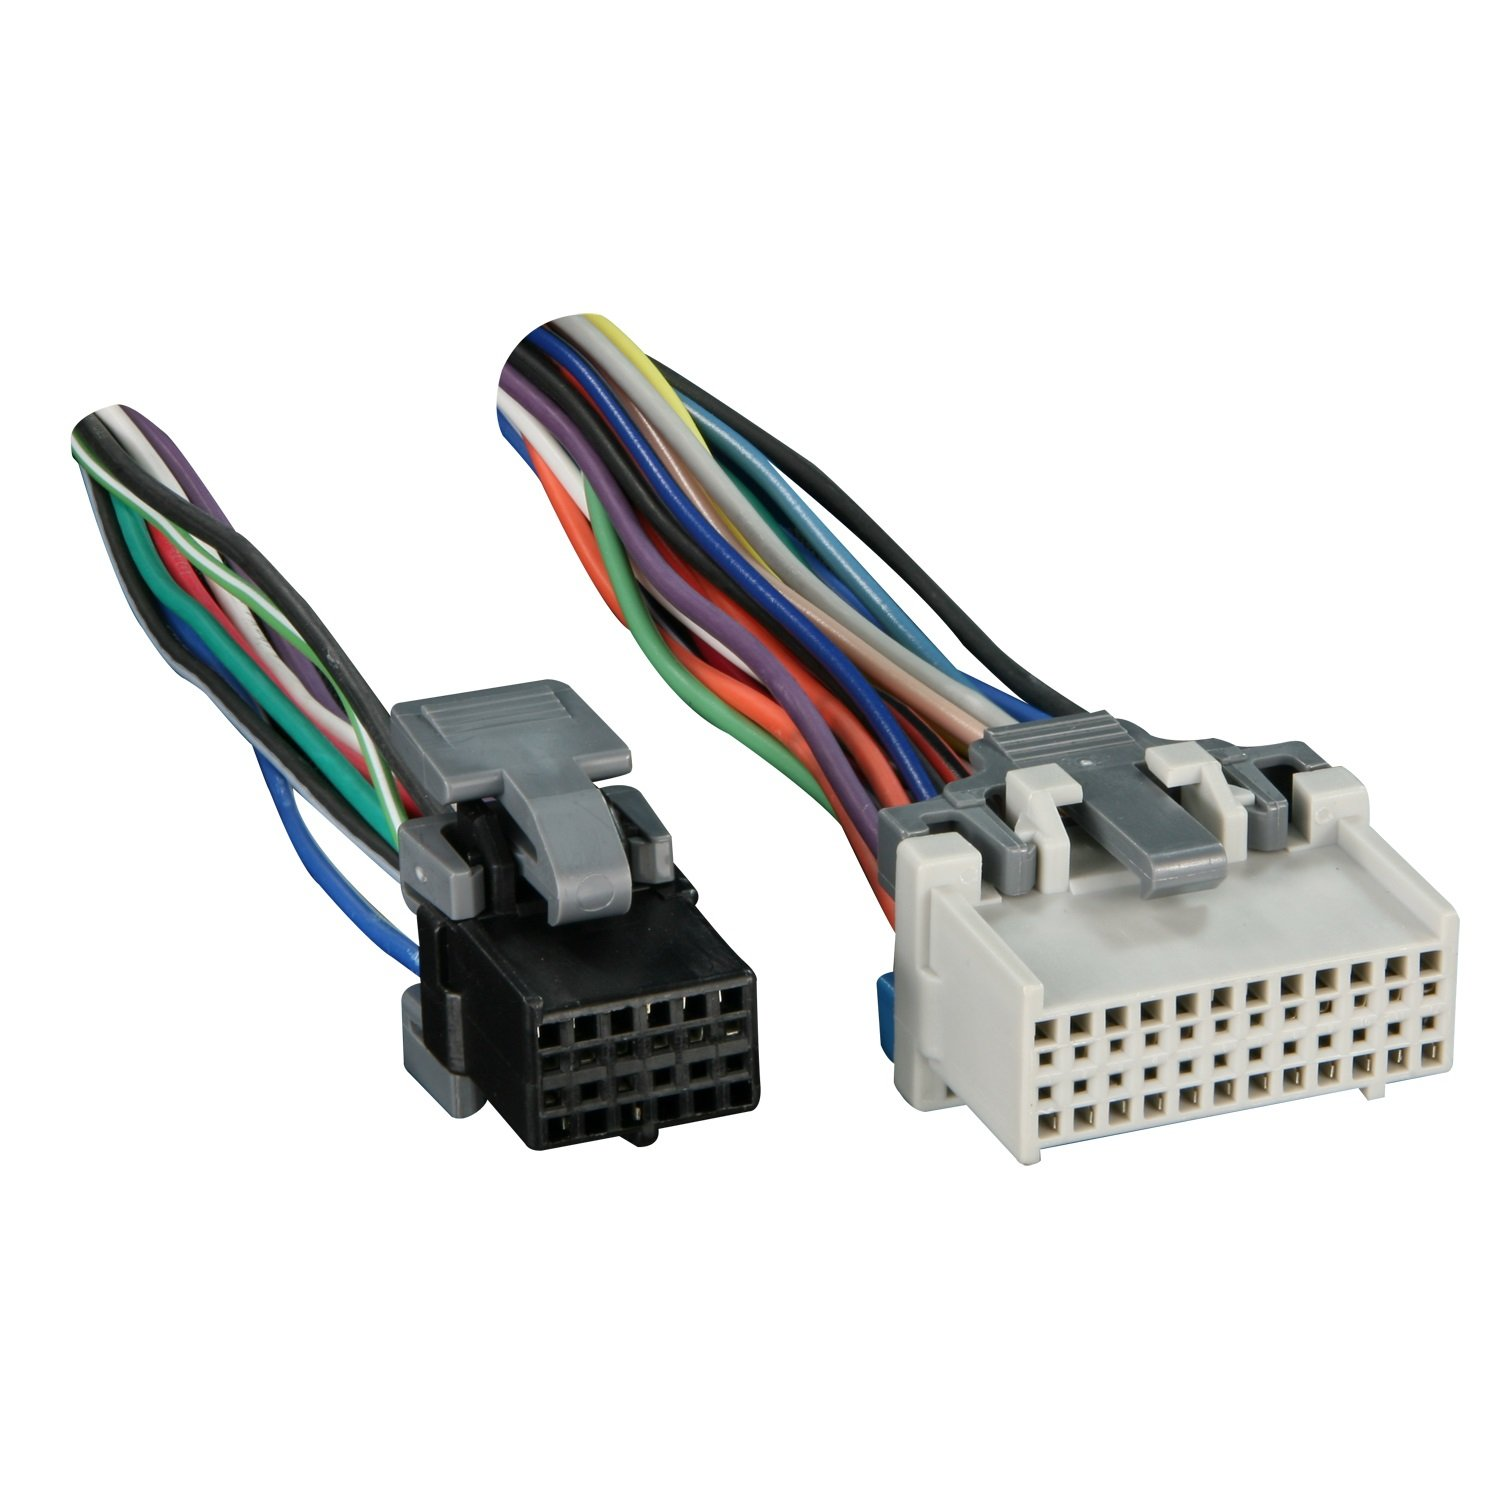 711log4bdML._SL1500_ amazon com metra turbowires 71 2003 1 wiring harness car electronics where to buy a trailer wiring harness at n-0.co